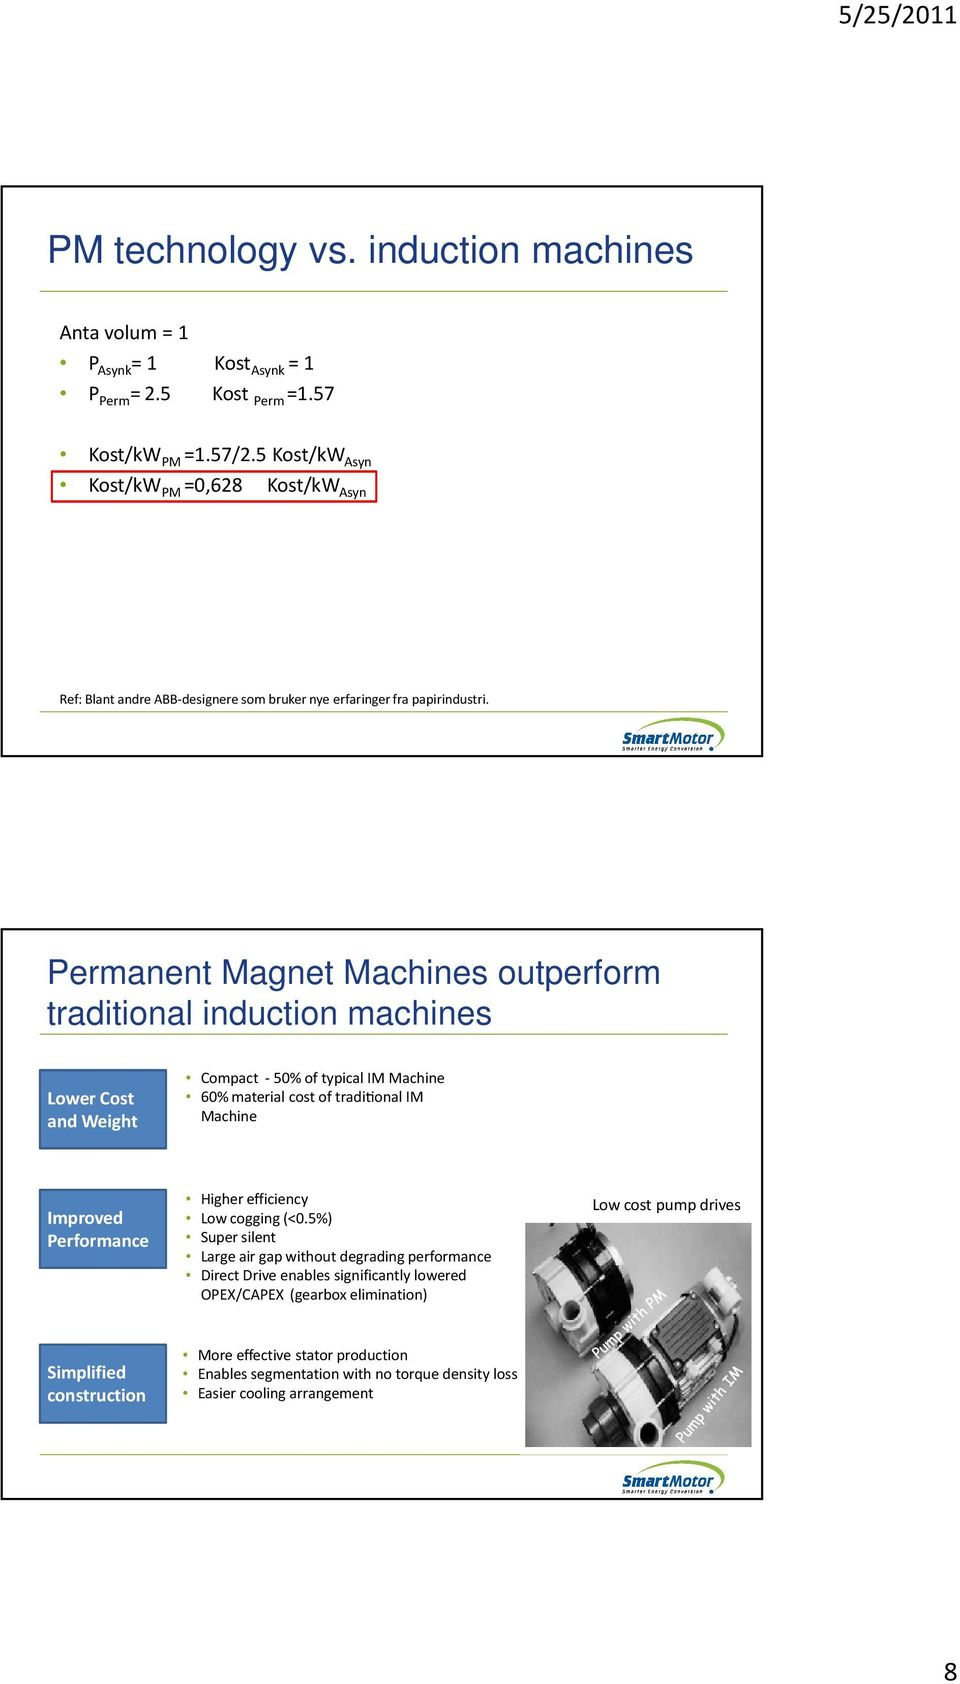 Permanent Magnet Machines outperform traditional induction machines Lower Cost and Weight Compact -50% of typical IM Machine 60% material cost of tradi onal IM Machine Improved Performance